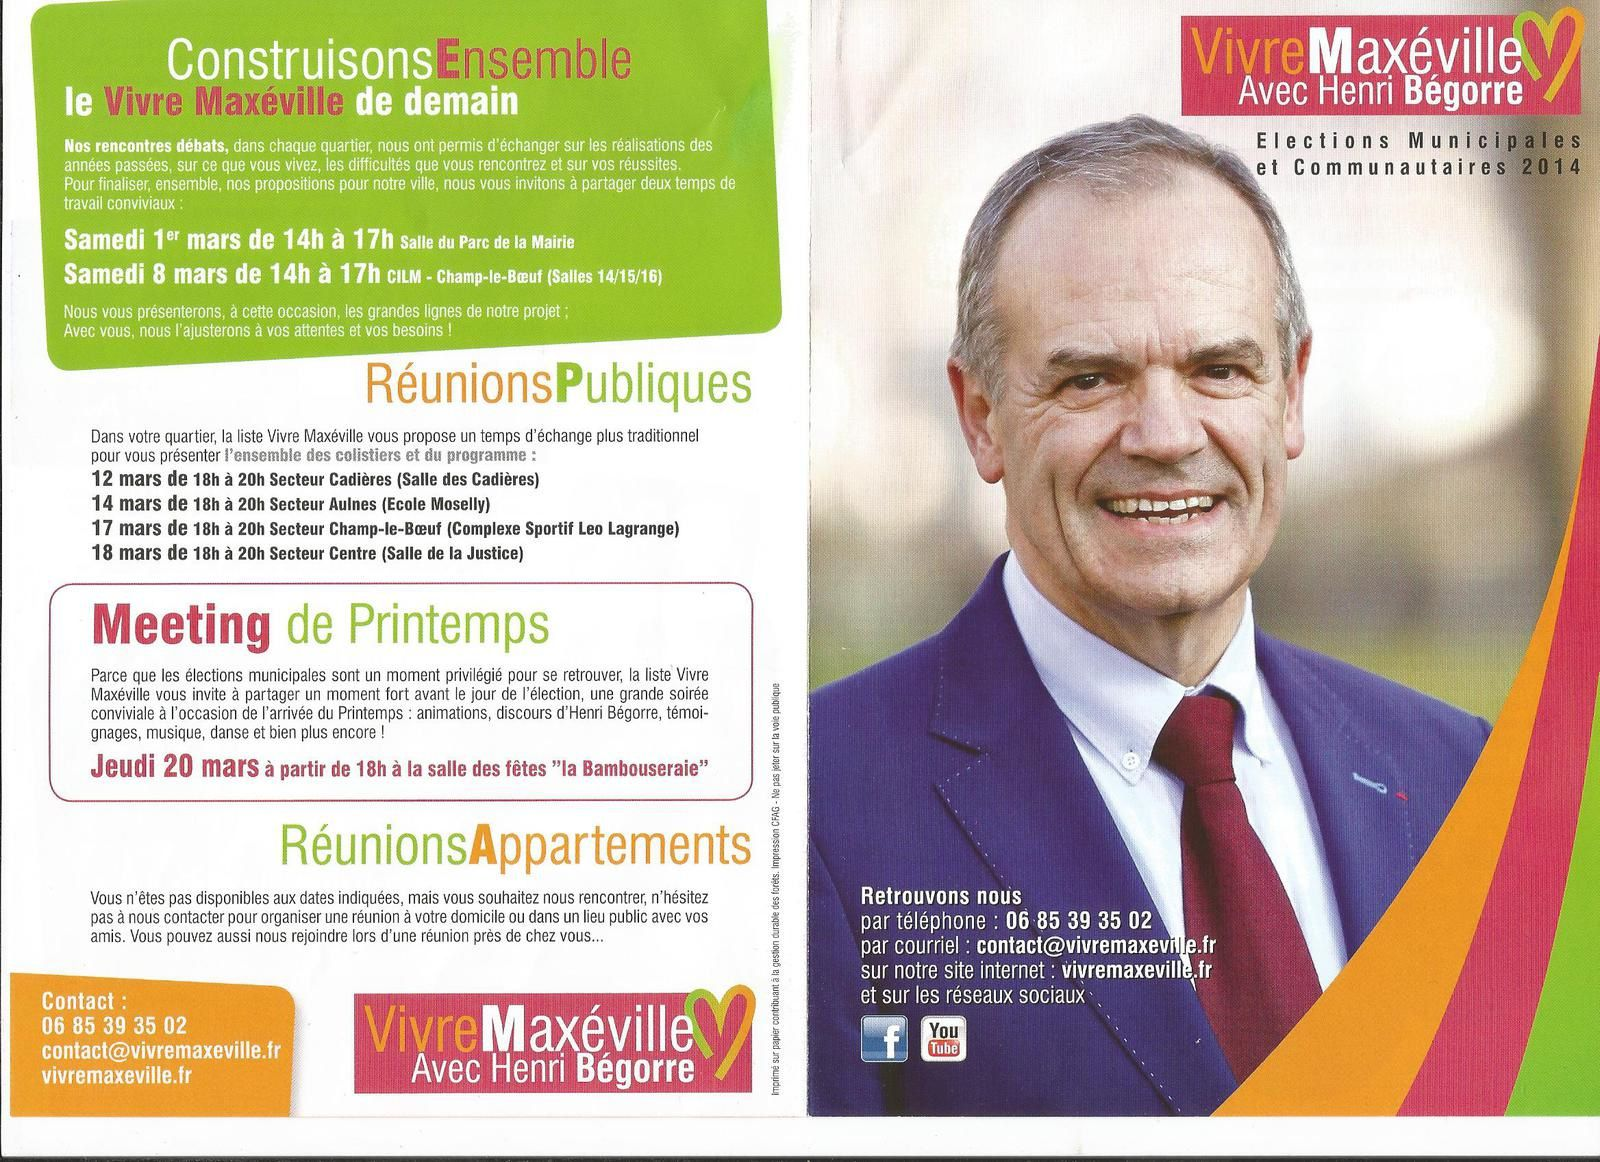 Municipales: la question du vendredi de Max'Dany (8)